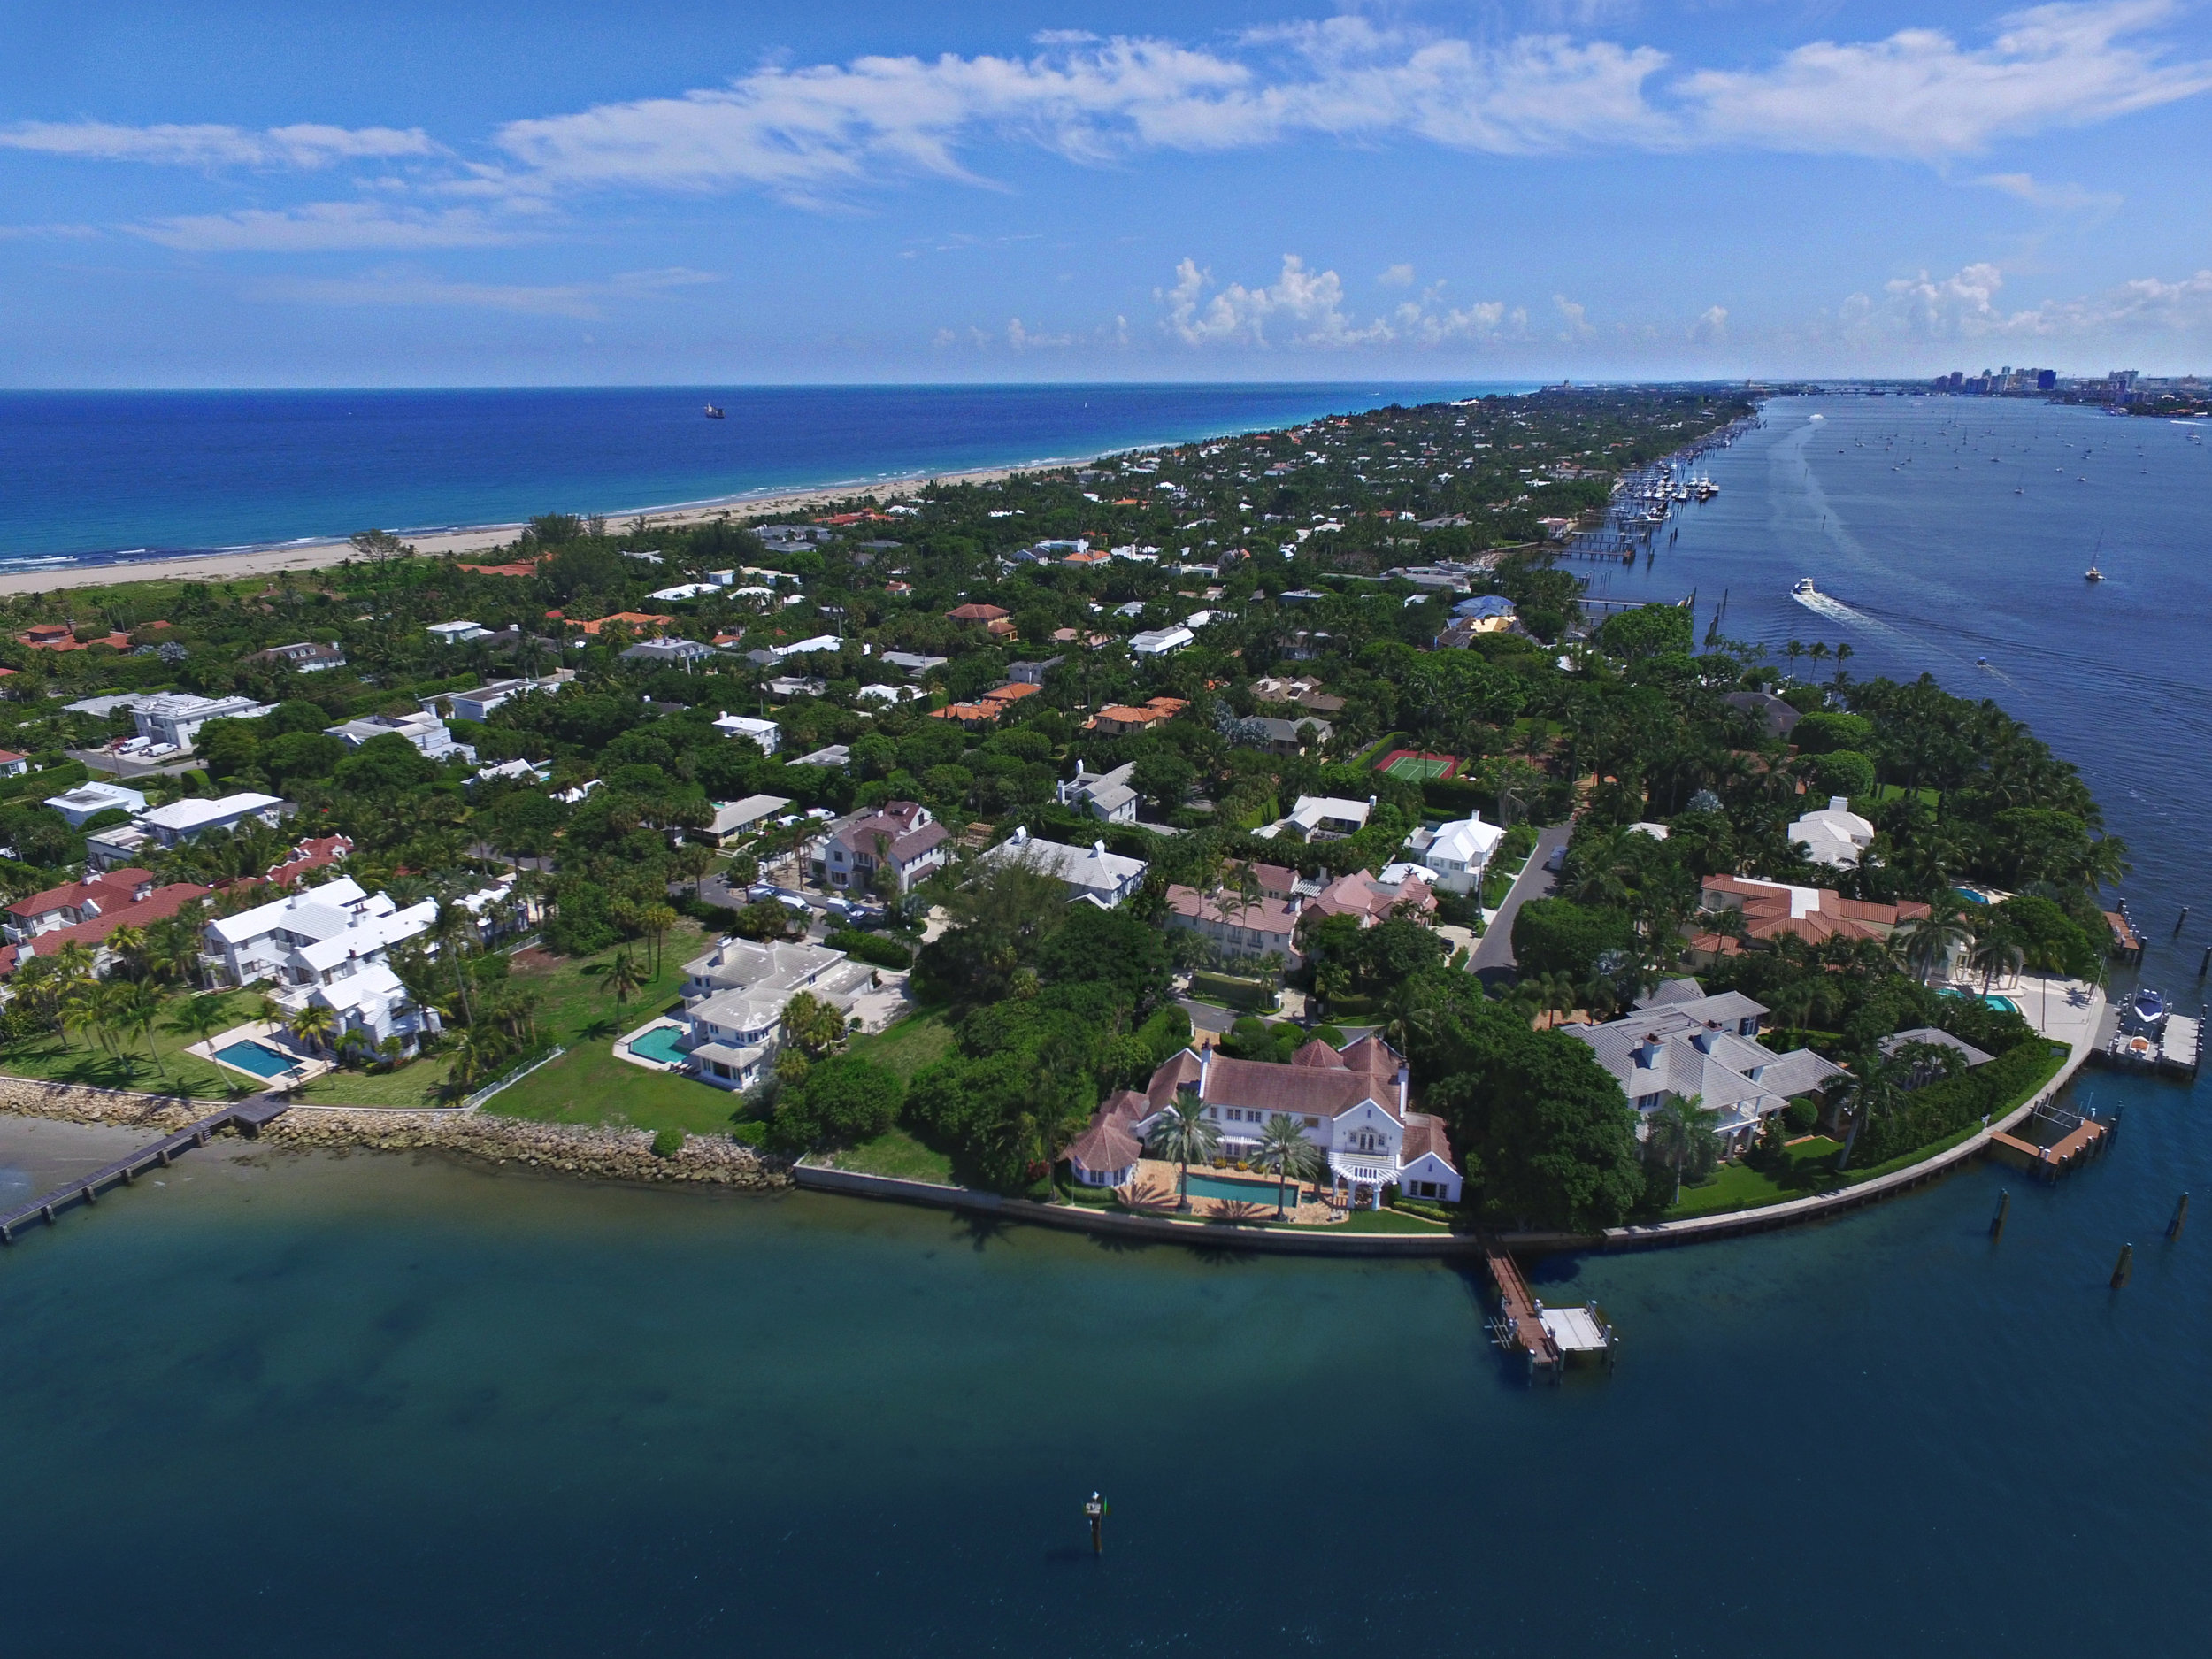 An aerial view of Palm Beach from the North End of the island